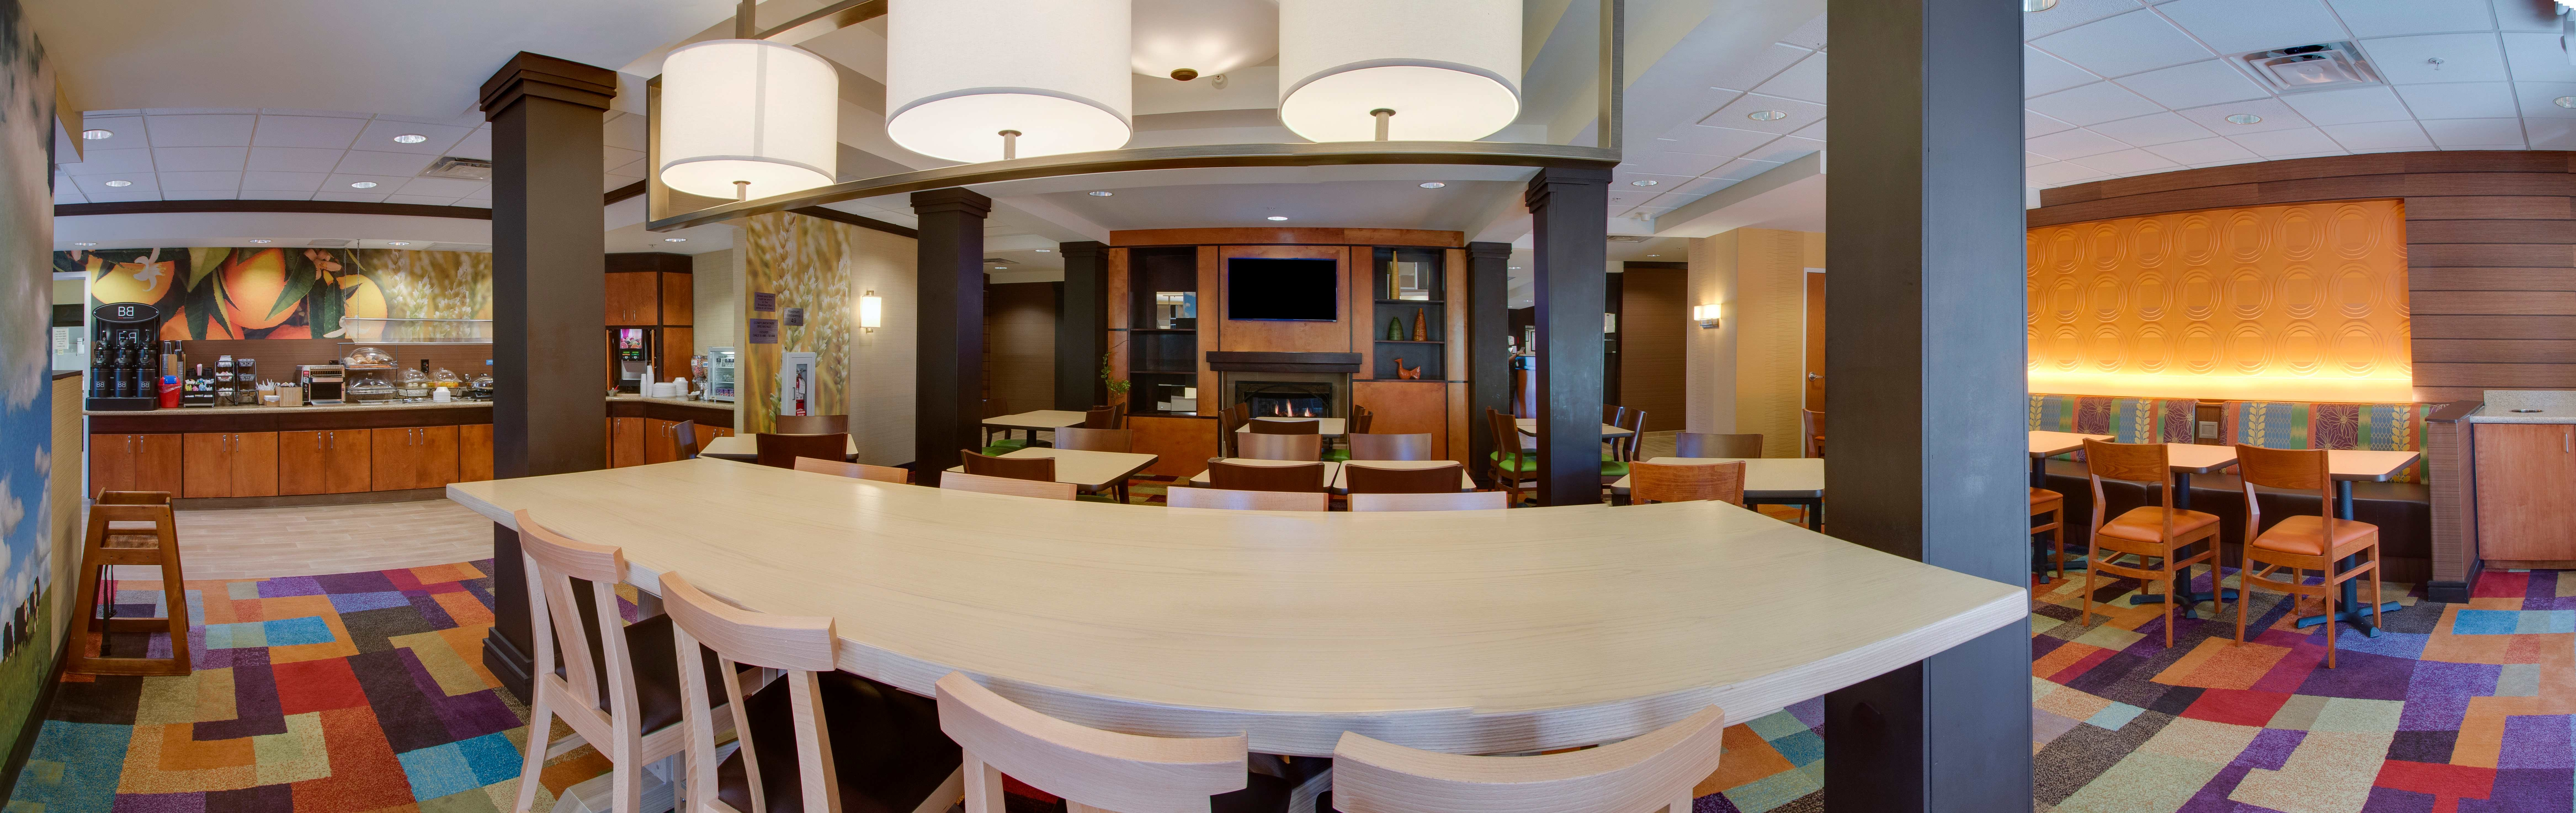 Fairfield Inn & Suites by Marriott Clermont image 8